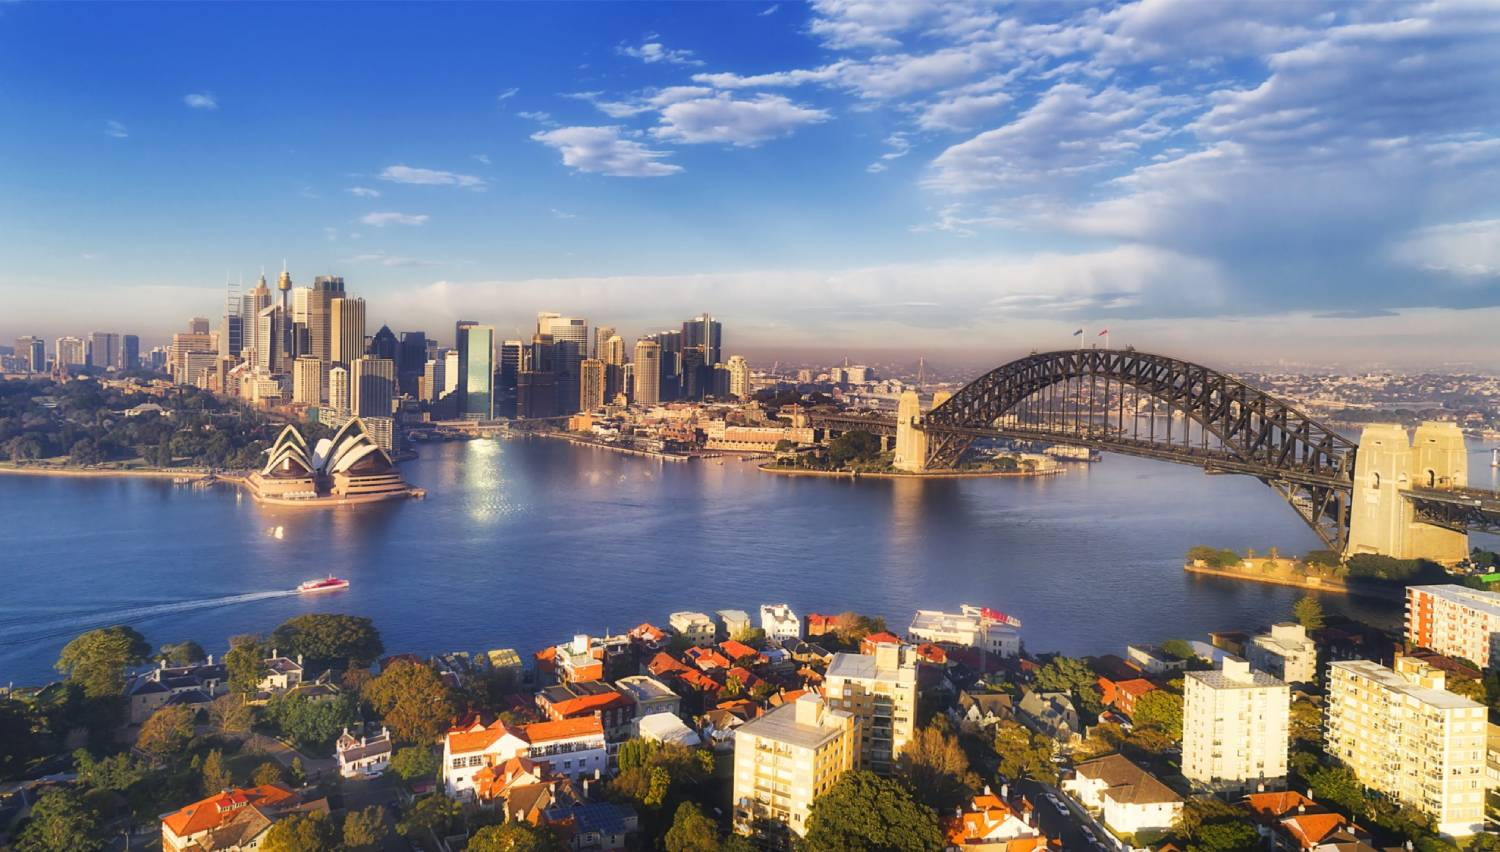 Sydney Harbour - Things To Do In Sydney